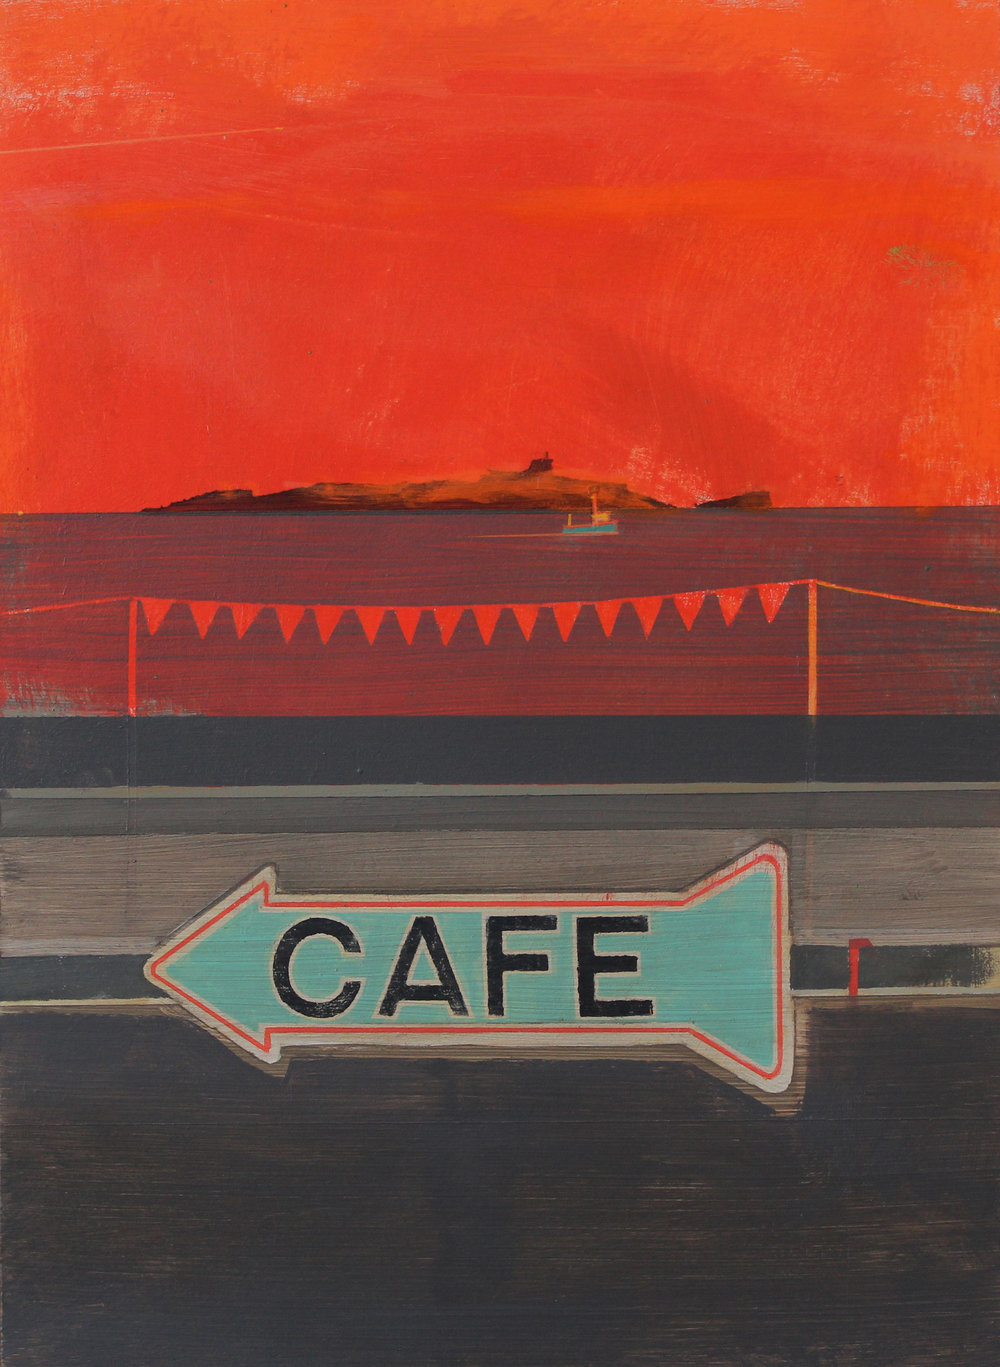 Cafe sign at sunset, Mousehole, 35x25 cm, acrylic on board, £695.